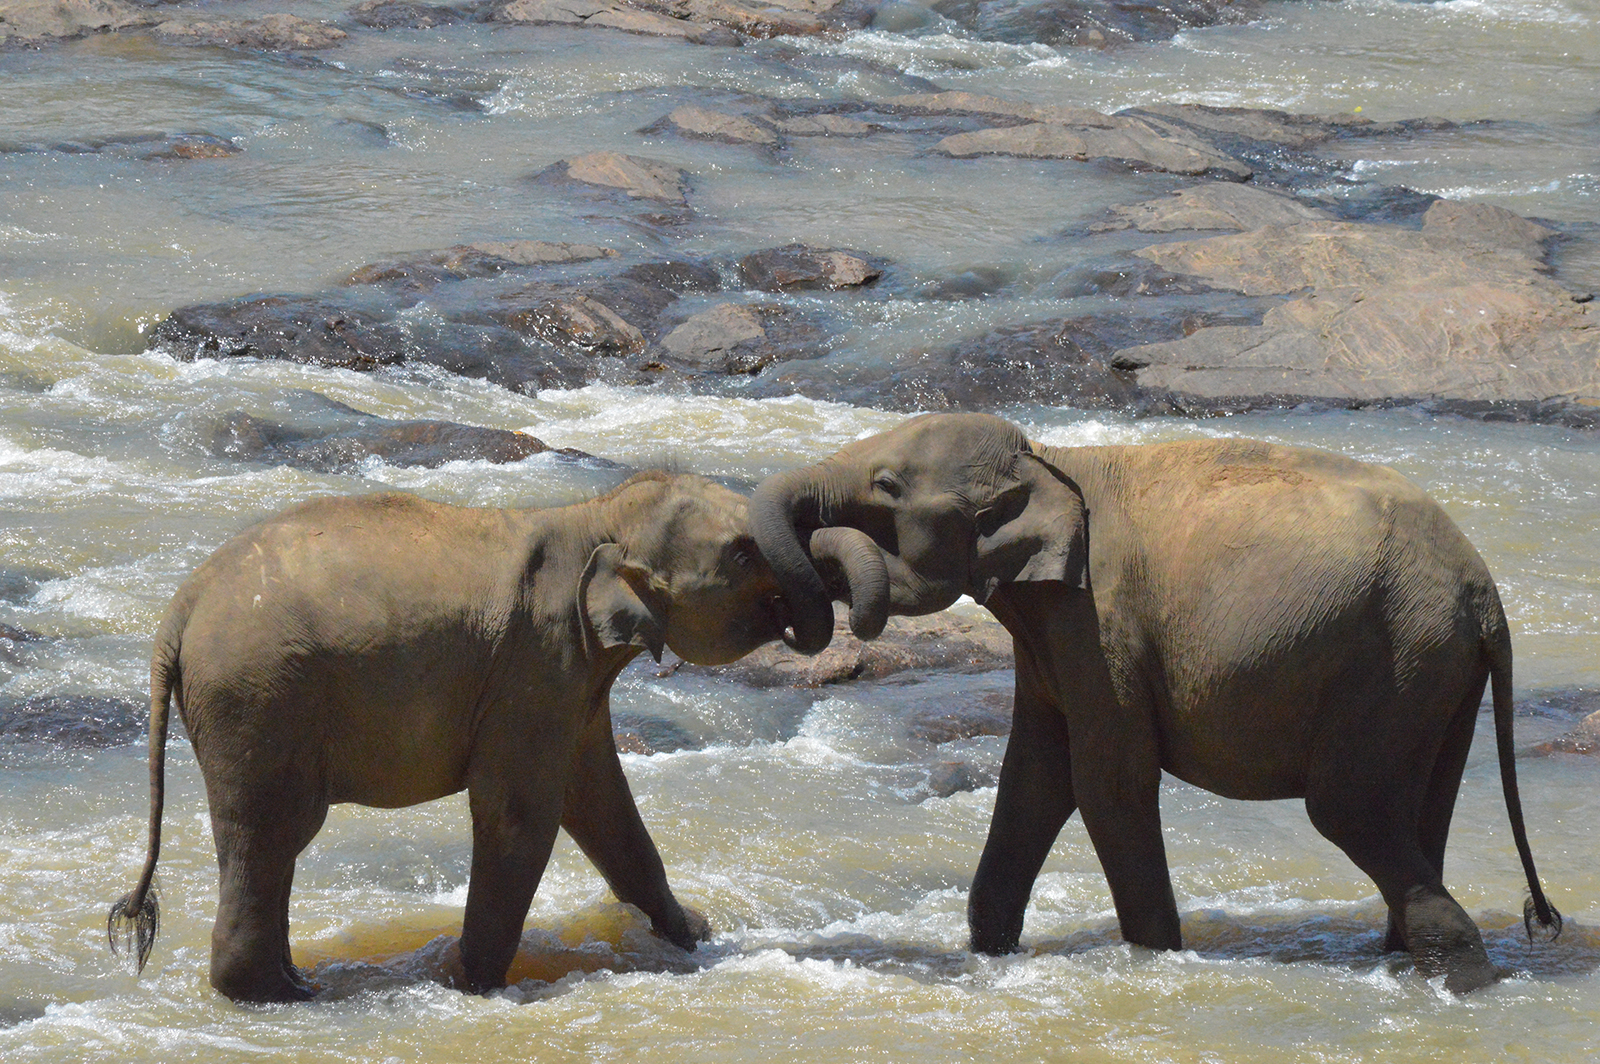 two elephants in a river